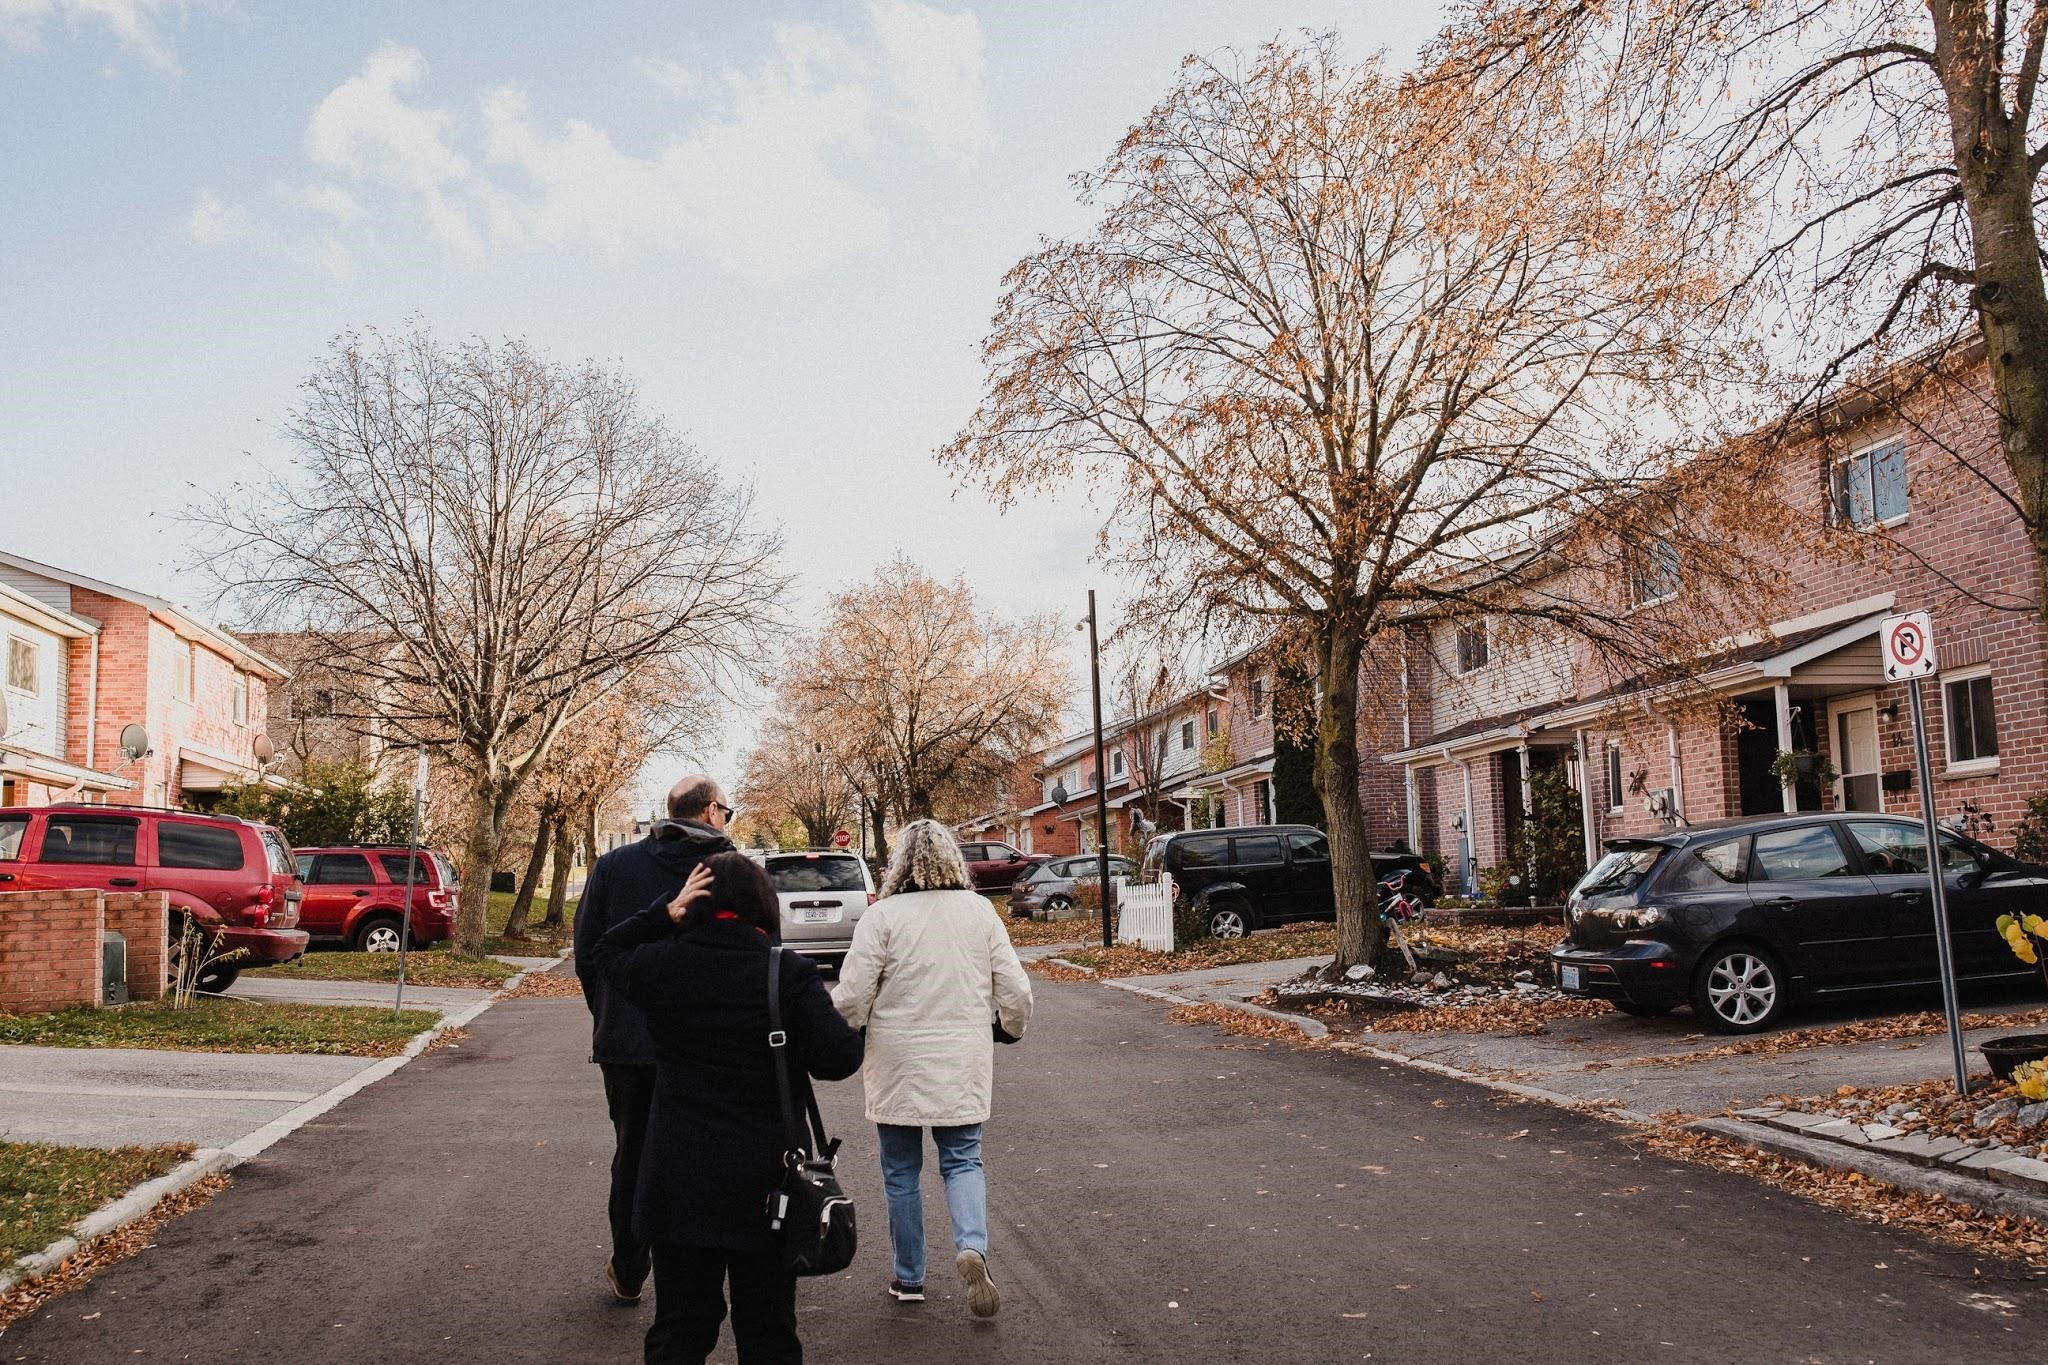 Three people shown from the back, walking down a road past rows of co-op homes, with trees overhead